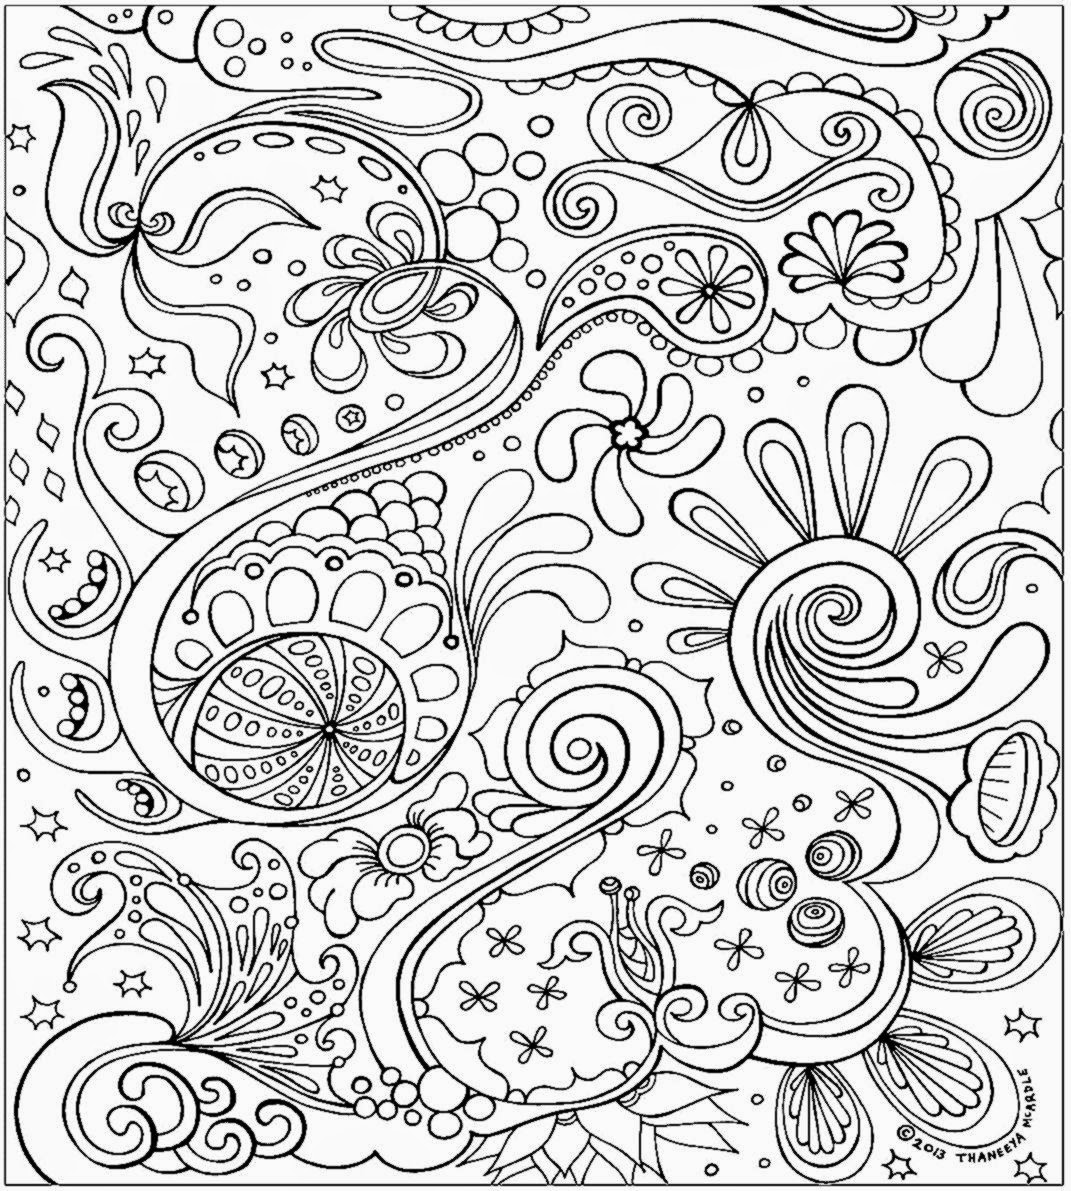 coloring pages for adults printable - stress coloring pages to download and print for free